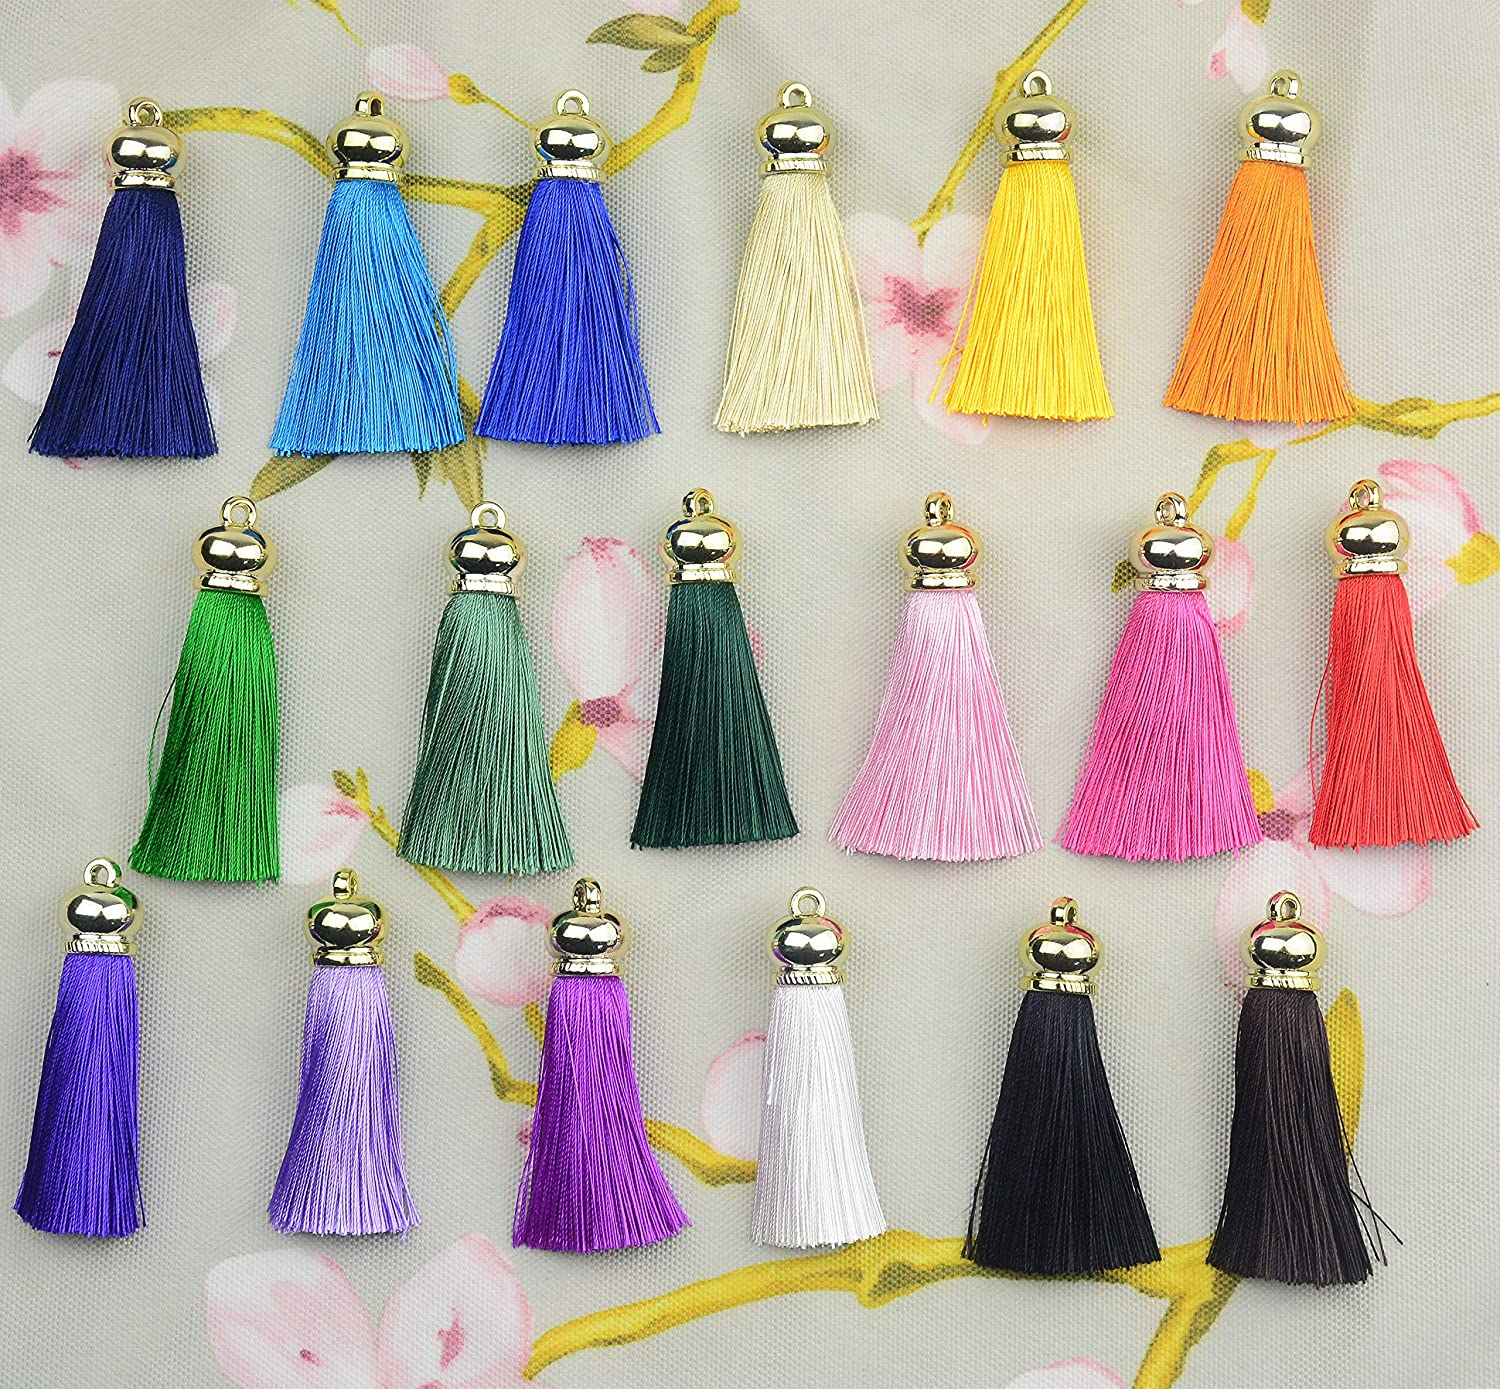 Gold Series Mixed 18 Colorful 6cm//2.4 inch Handmade Chunky Imitation Silk Craft Jewelry Tassels with Gold Cap Jewelry Pendant Crafts